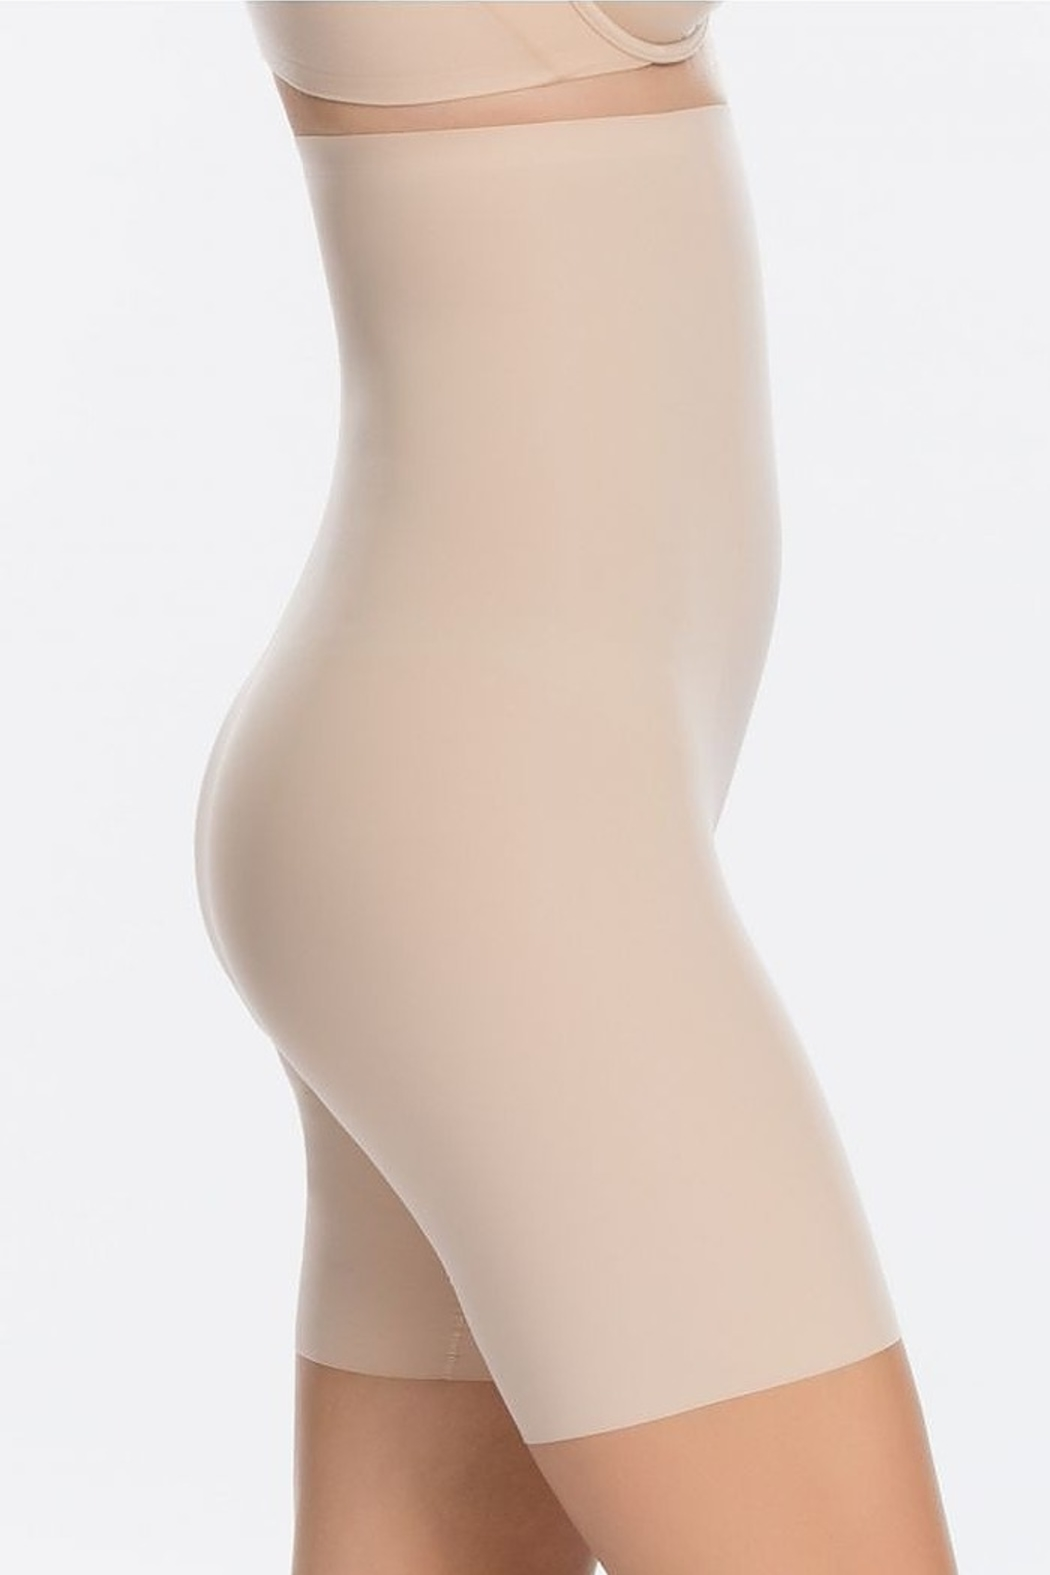 Spanx Thinstincts High-Waisted Mid-Thigh Short - Front Full Image